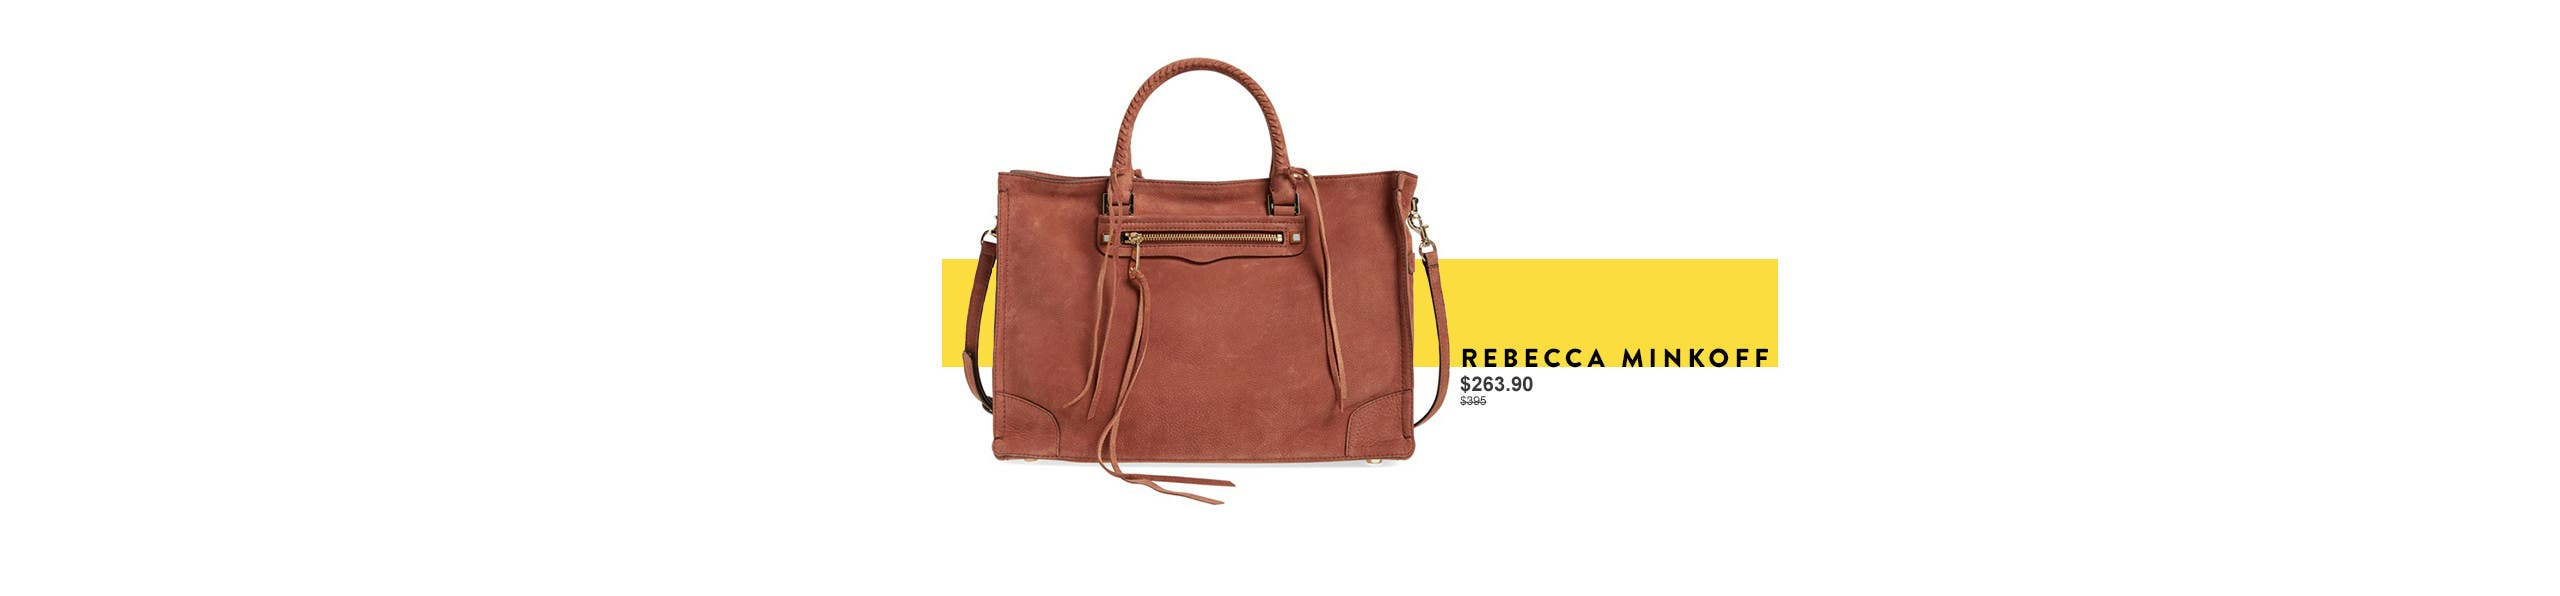 Rebecca Minkoff handbags at Anniversary sale.